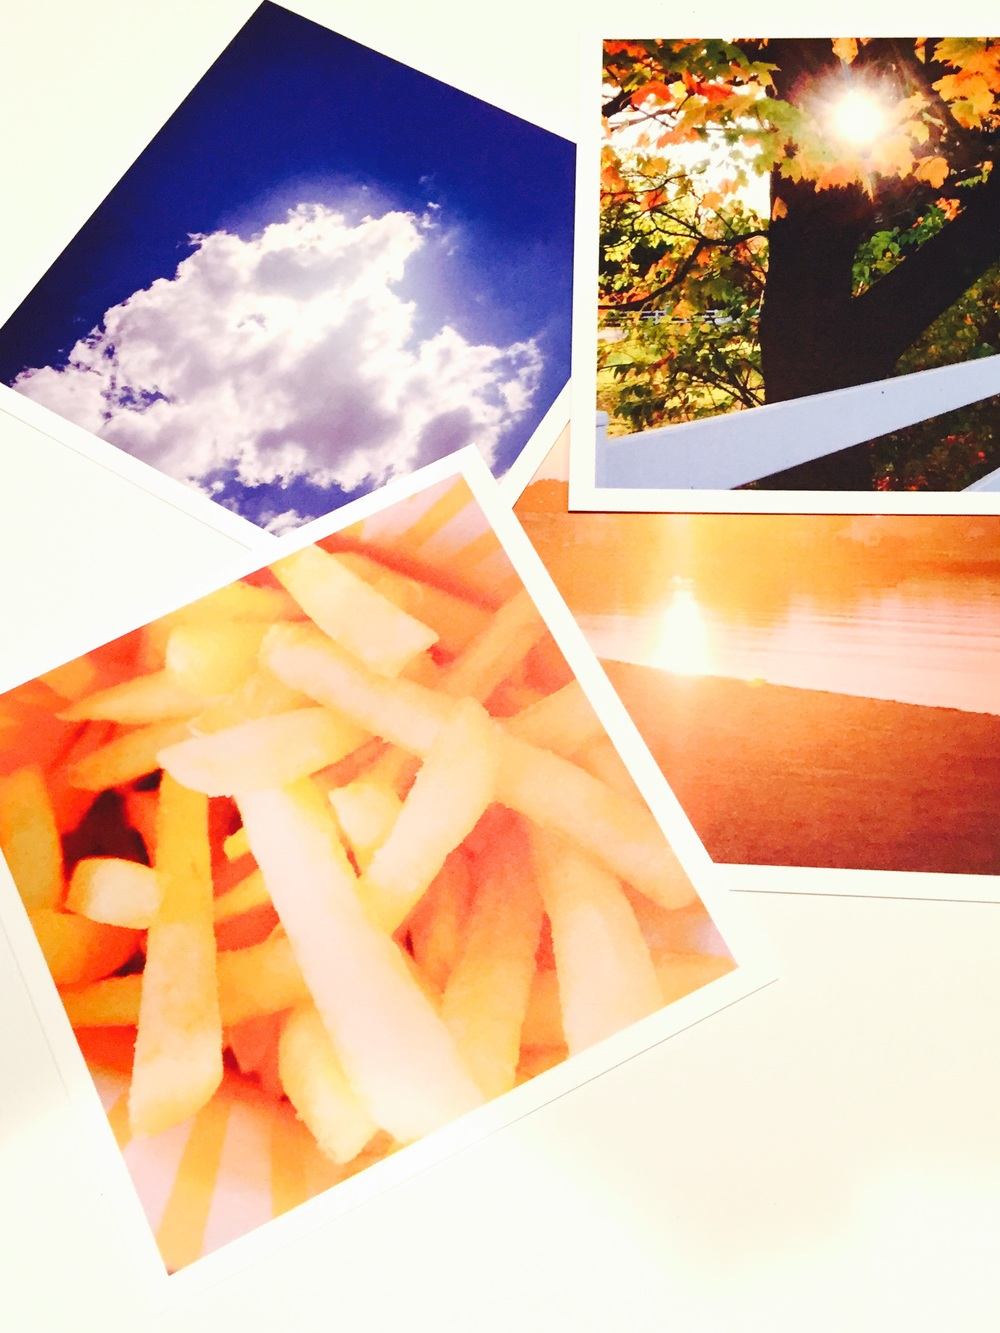 A simple, quickly captured photo takes on a whole new life on these notecards